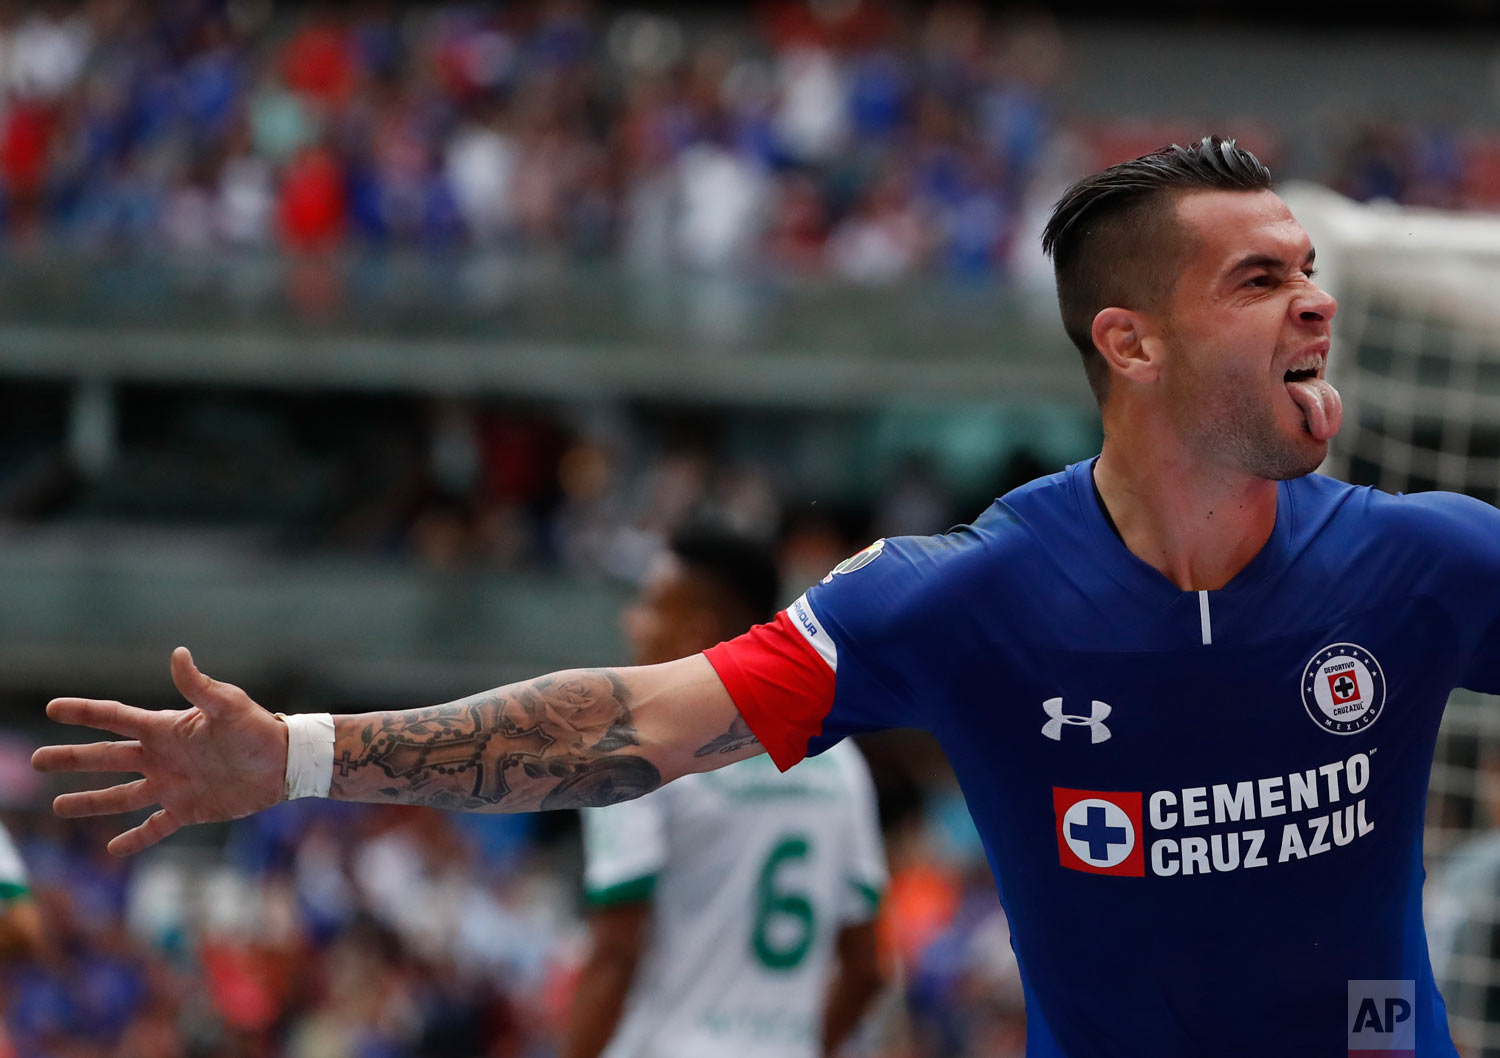 Cruz Azul's Caraglio Milton celebrates after scoring against Leon during a national league soccer match at Azteca Stadium in Mexico City, Aug. 18, 2018. (AP Photo/ Eduardo Verdugo)